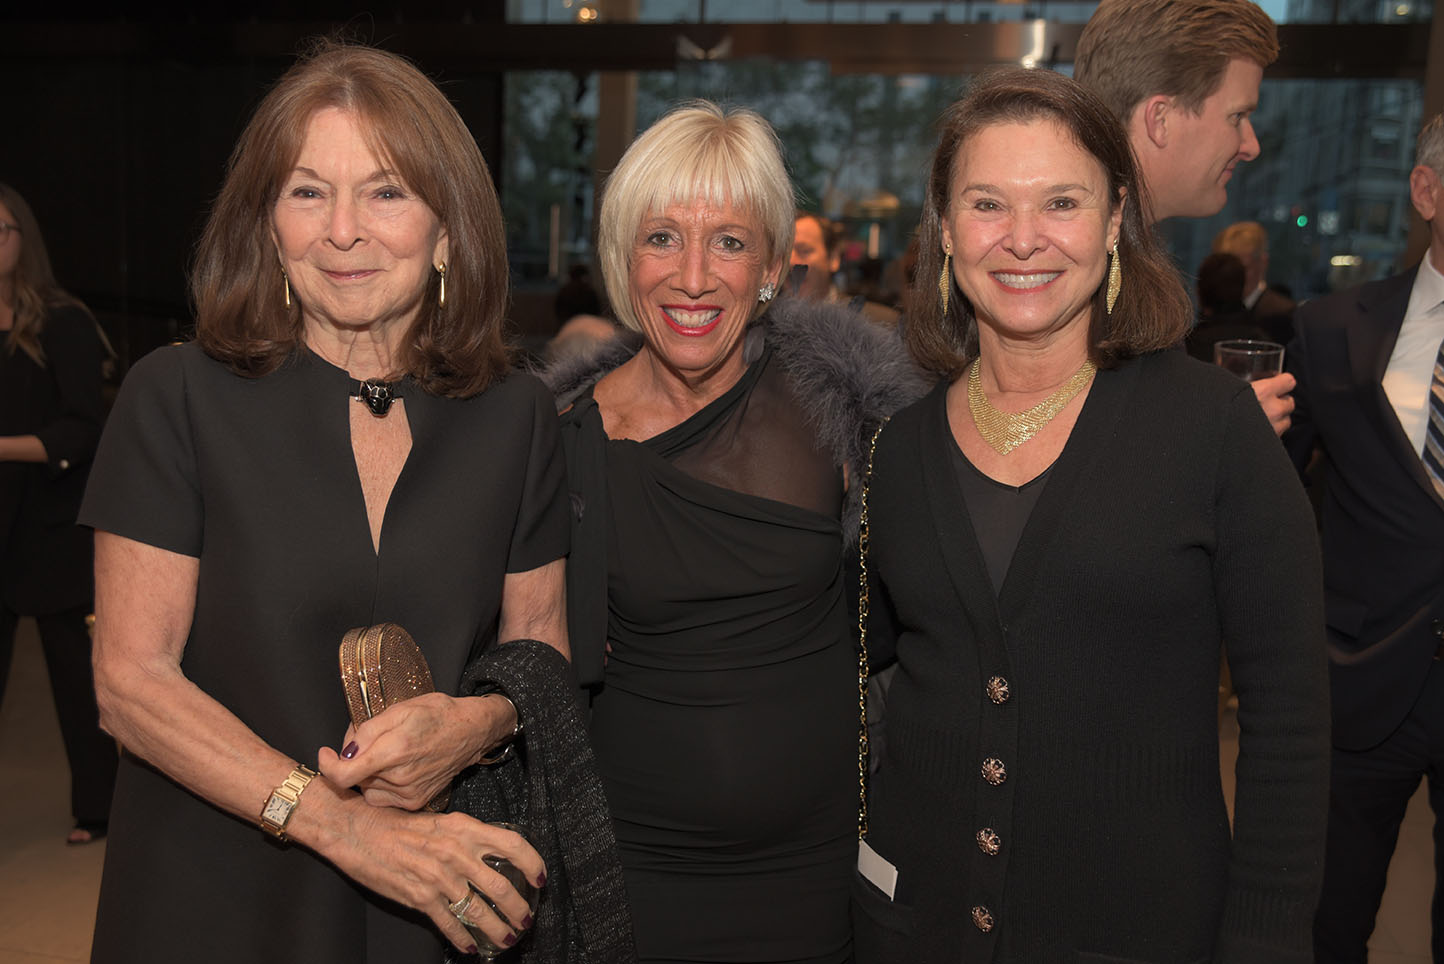 Board members Priscilla Kauff and Vicki Kellogg, Lynn Tishman